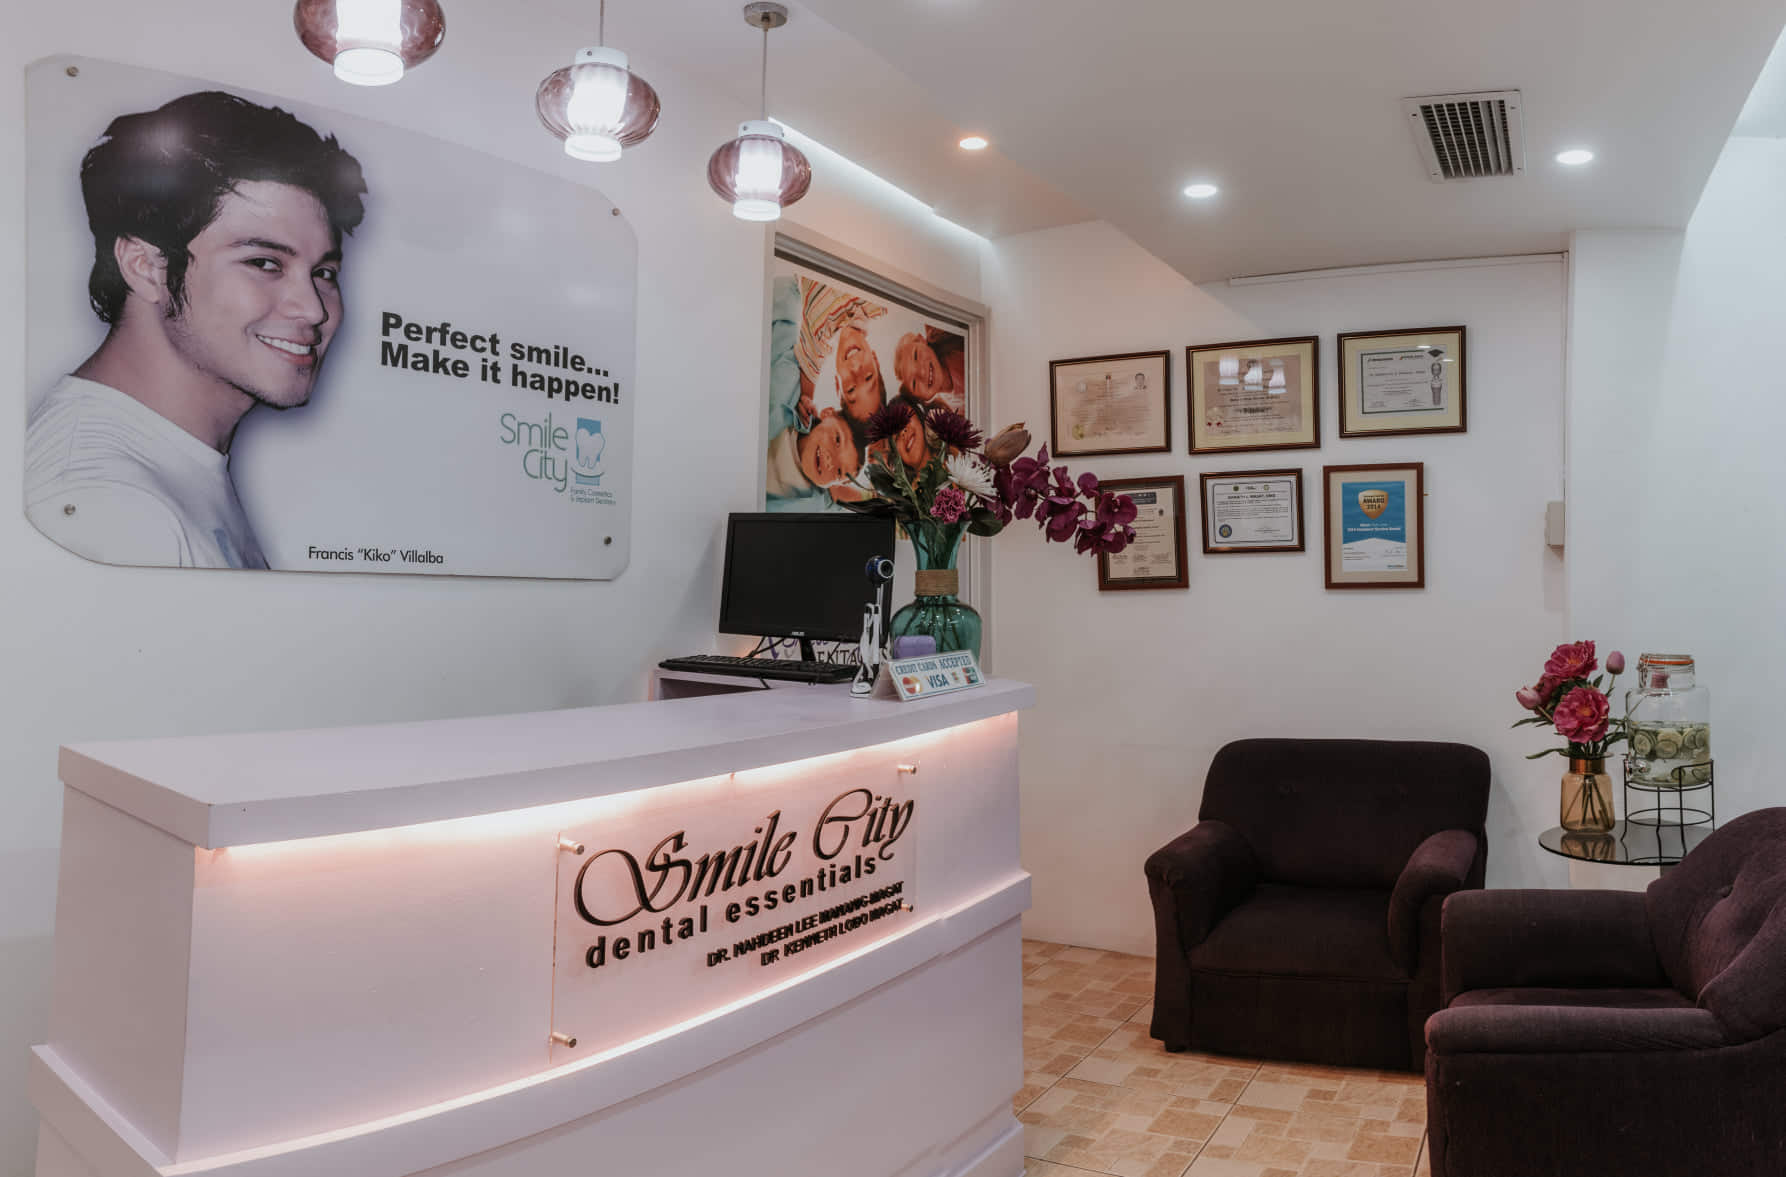 Smile City Dental Essentials by Dr. Magat